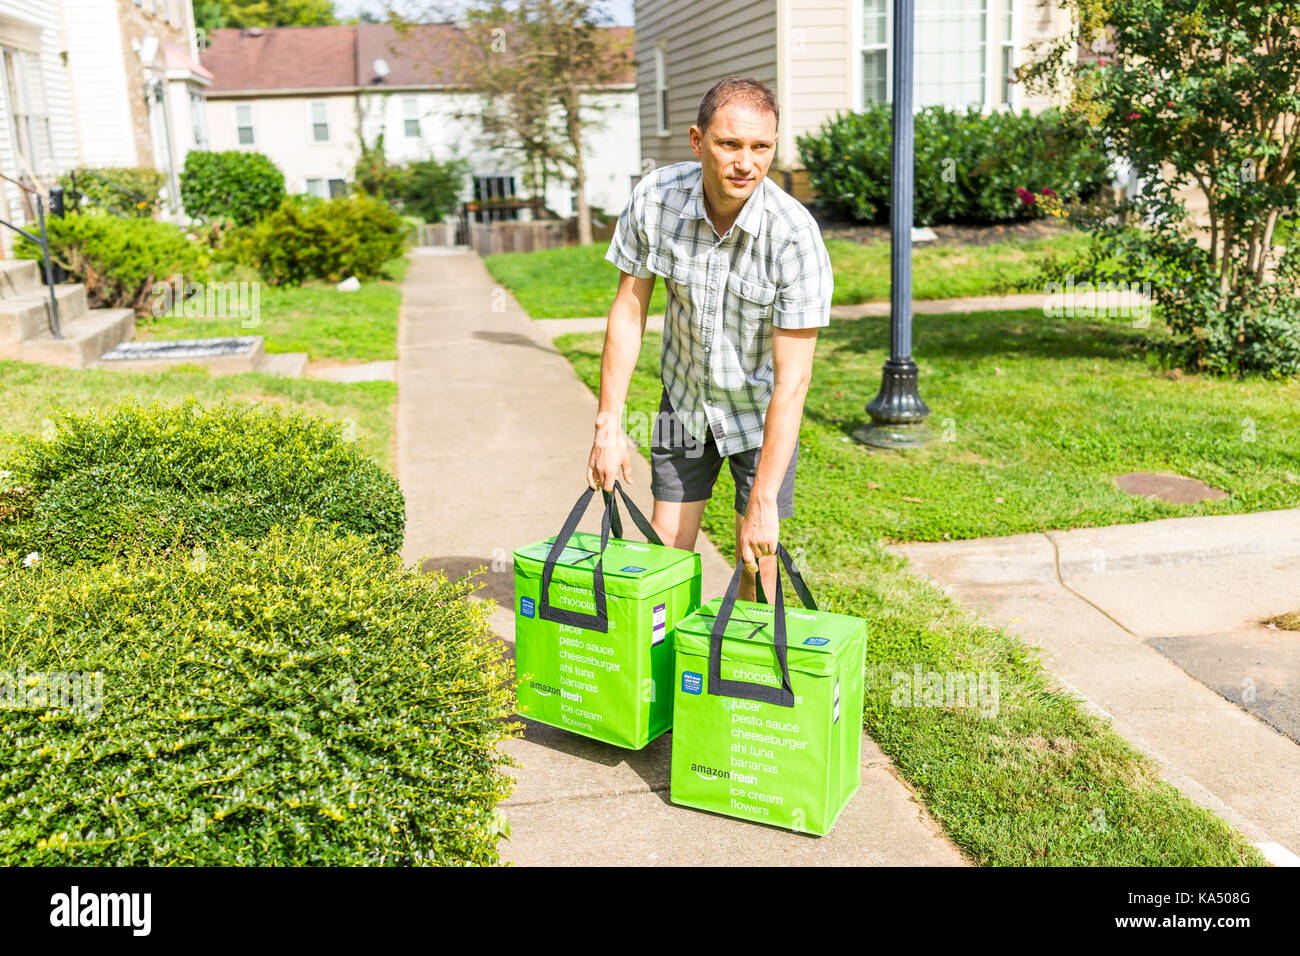 Fairfax, USA - September 12, 2017: Amazon Fresh insulated grocery delivery bags totes on front home house porch - Stock Image